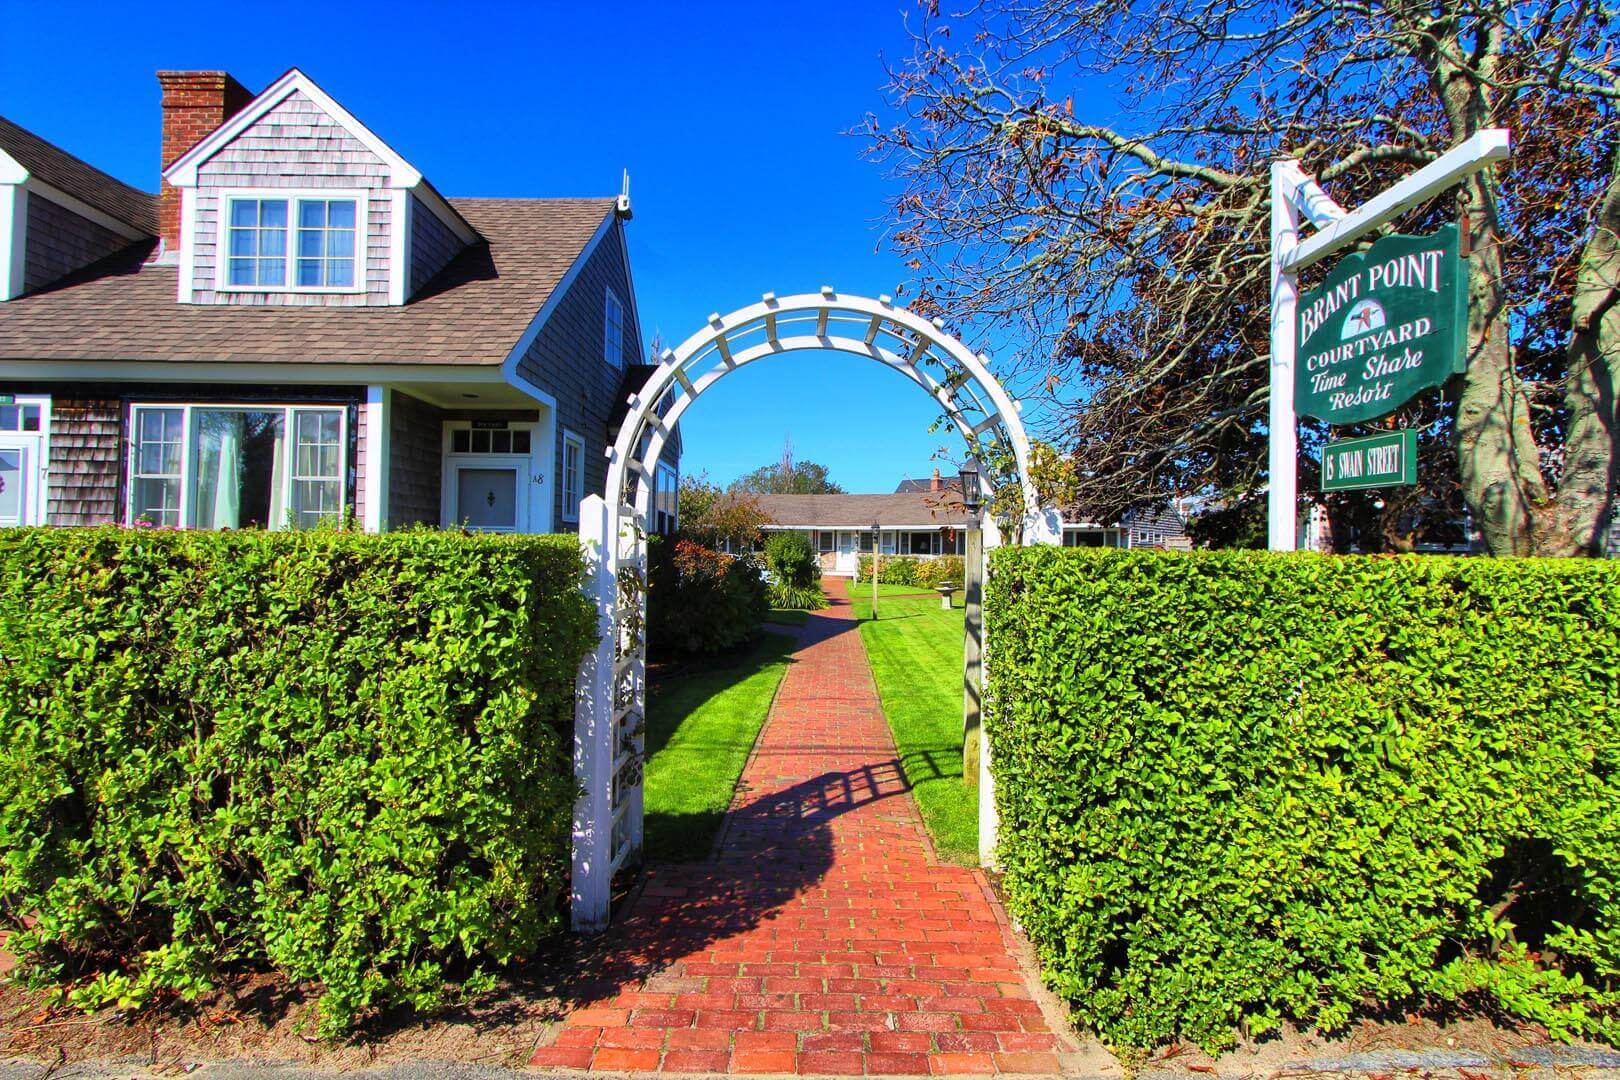 Brant Point Courtyard Enterance